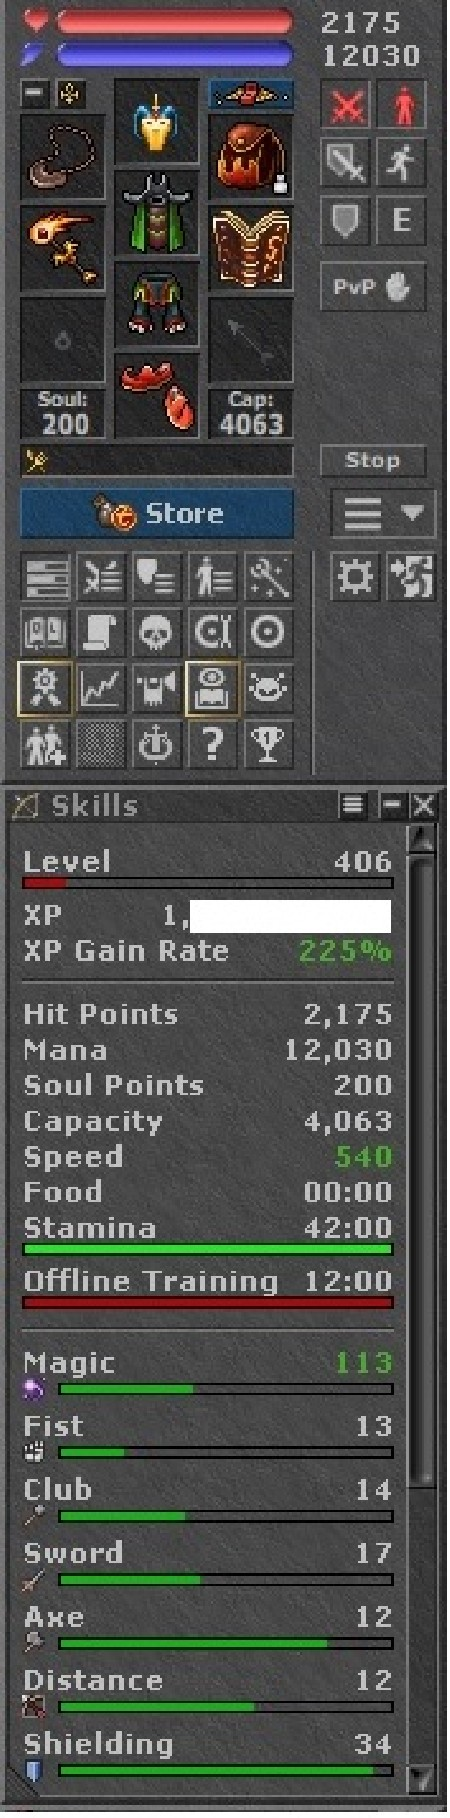 Tibia Character Open-PvP ~406 MS + 159 ED